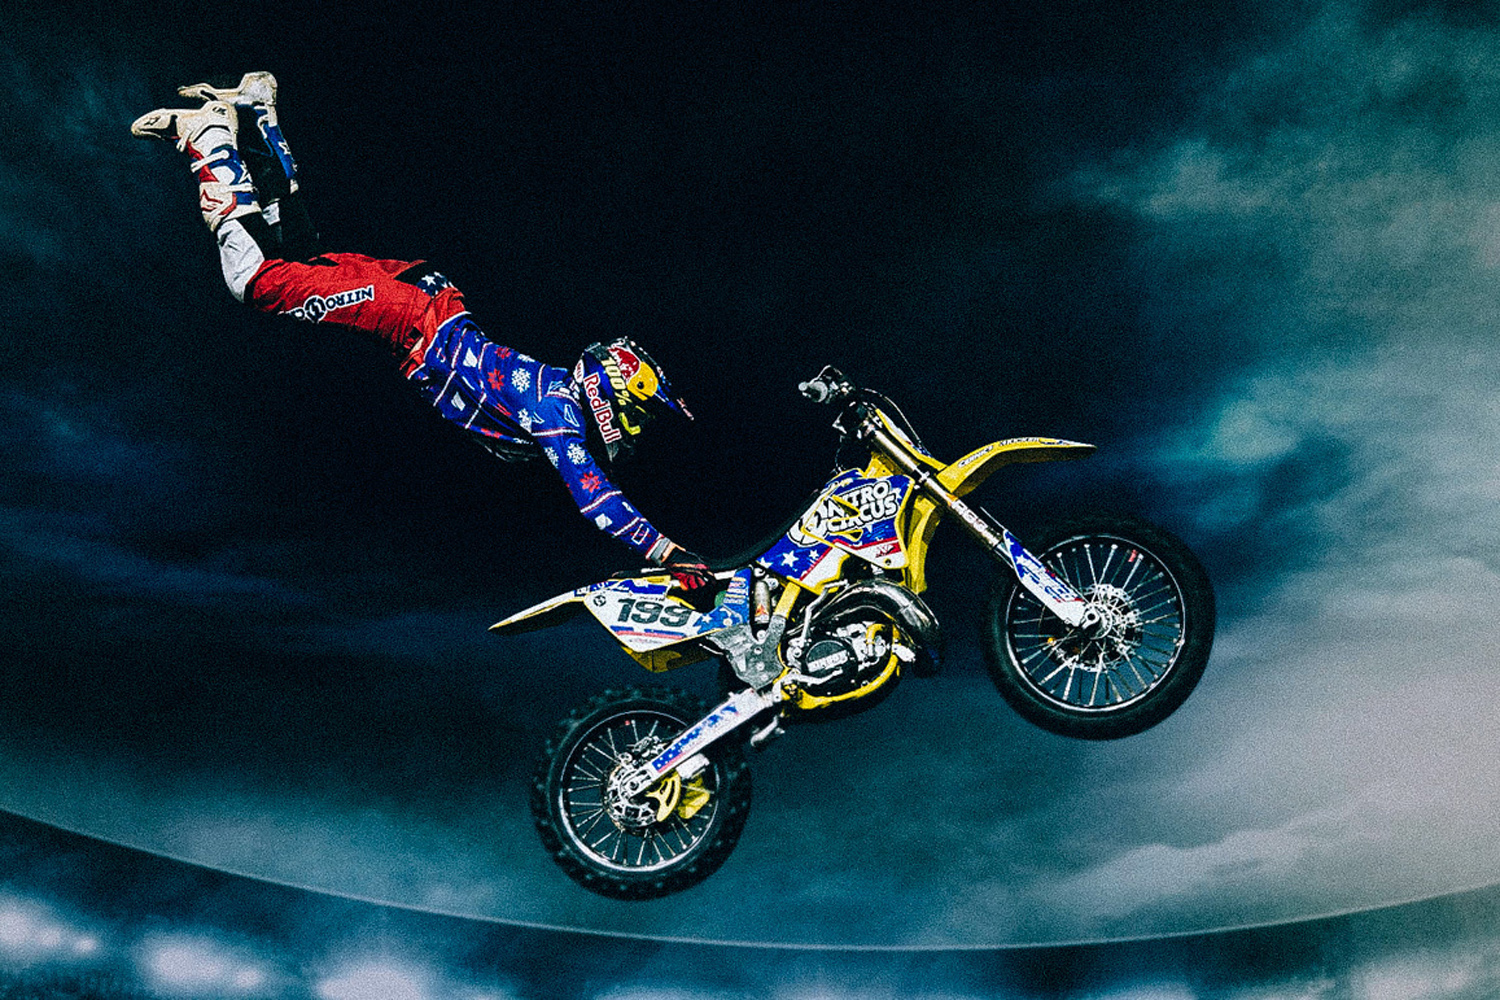 Action sports star Travis Pastrana